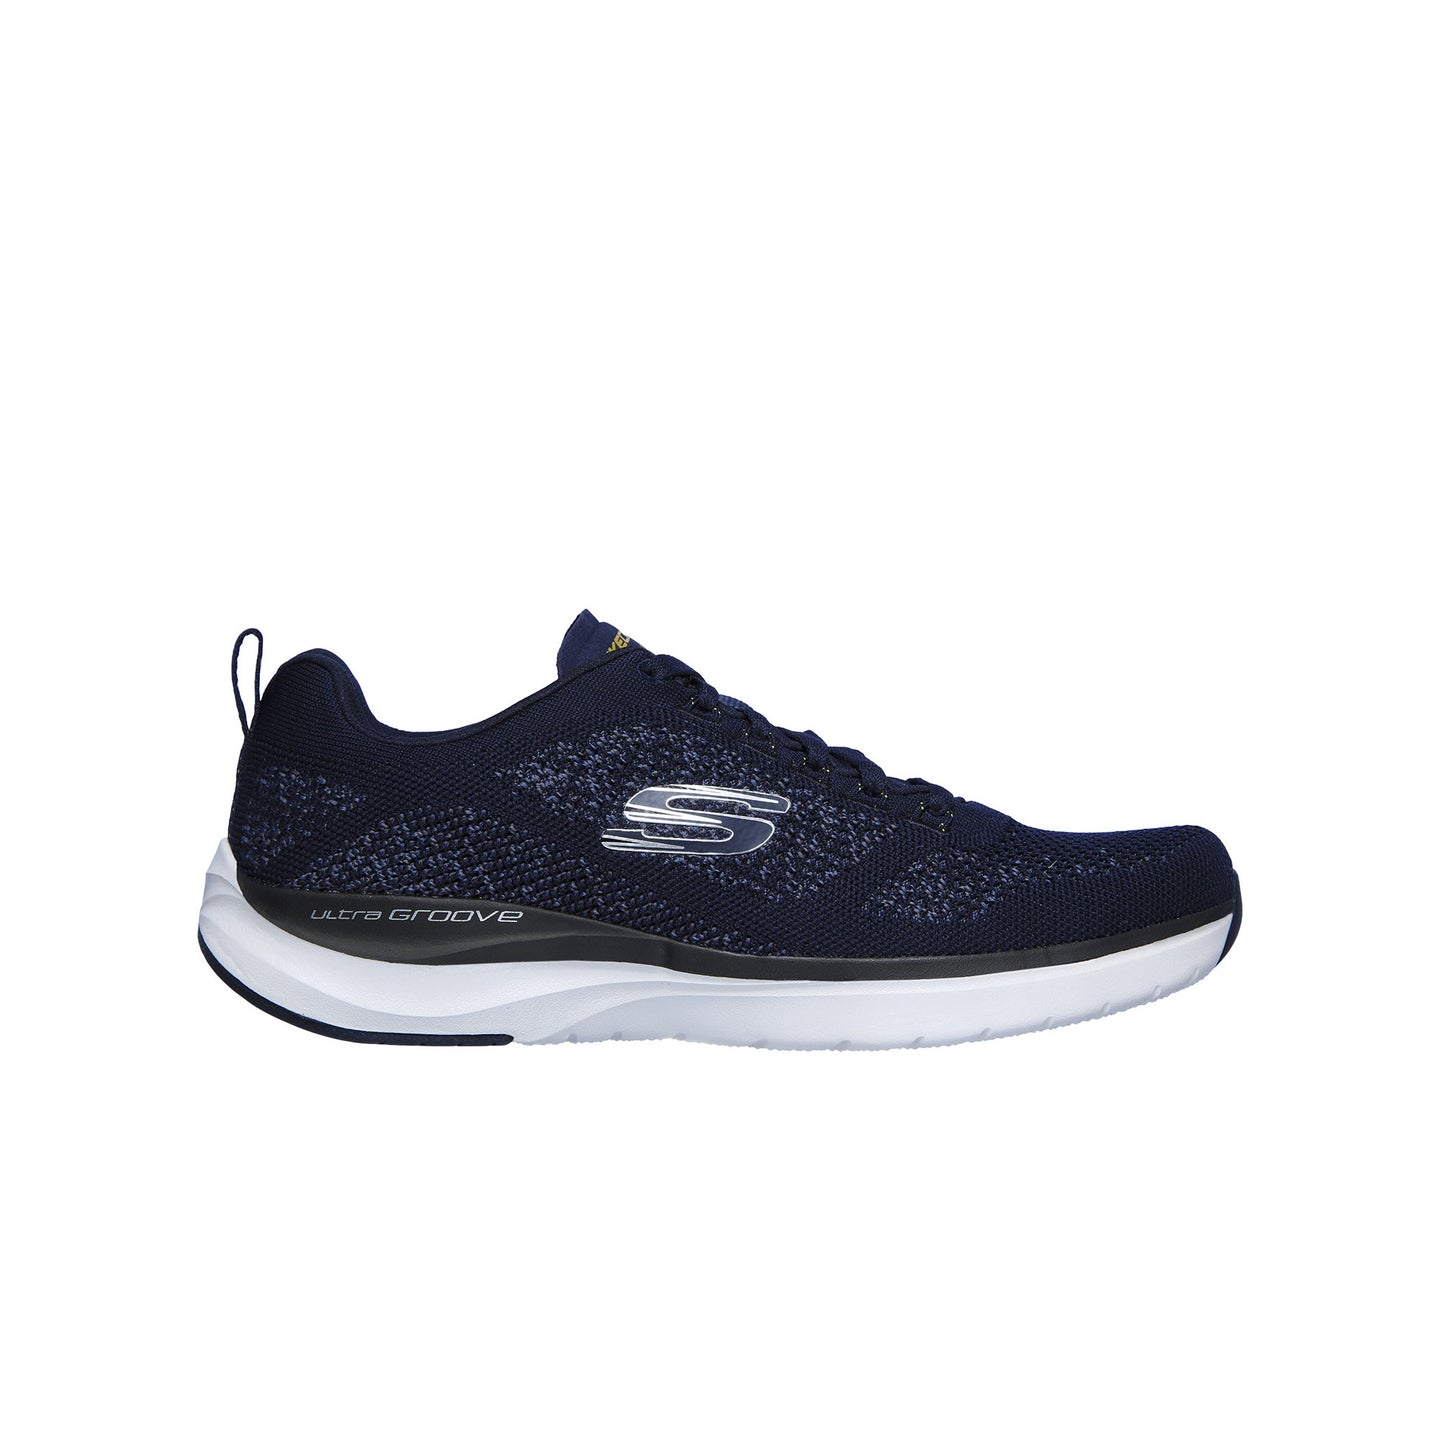 Giày Thể Thao Nam Skechers Ultra Groove